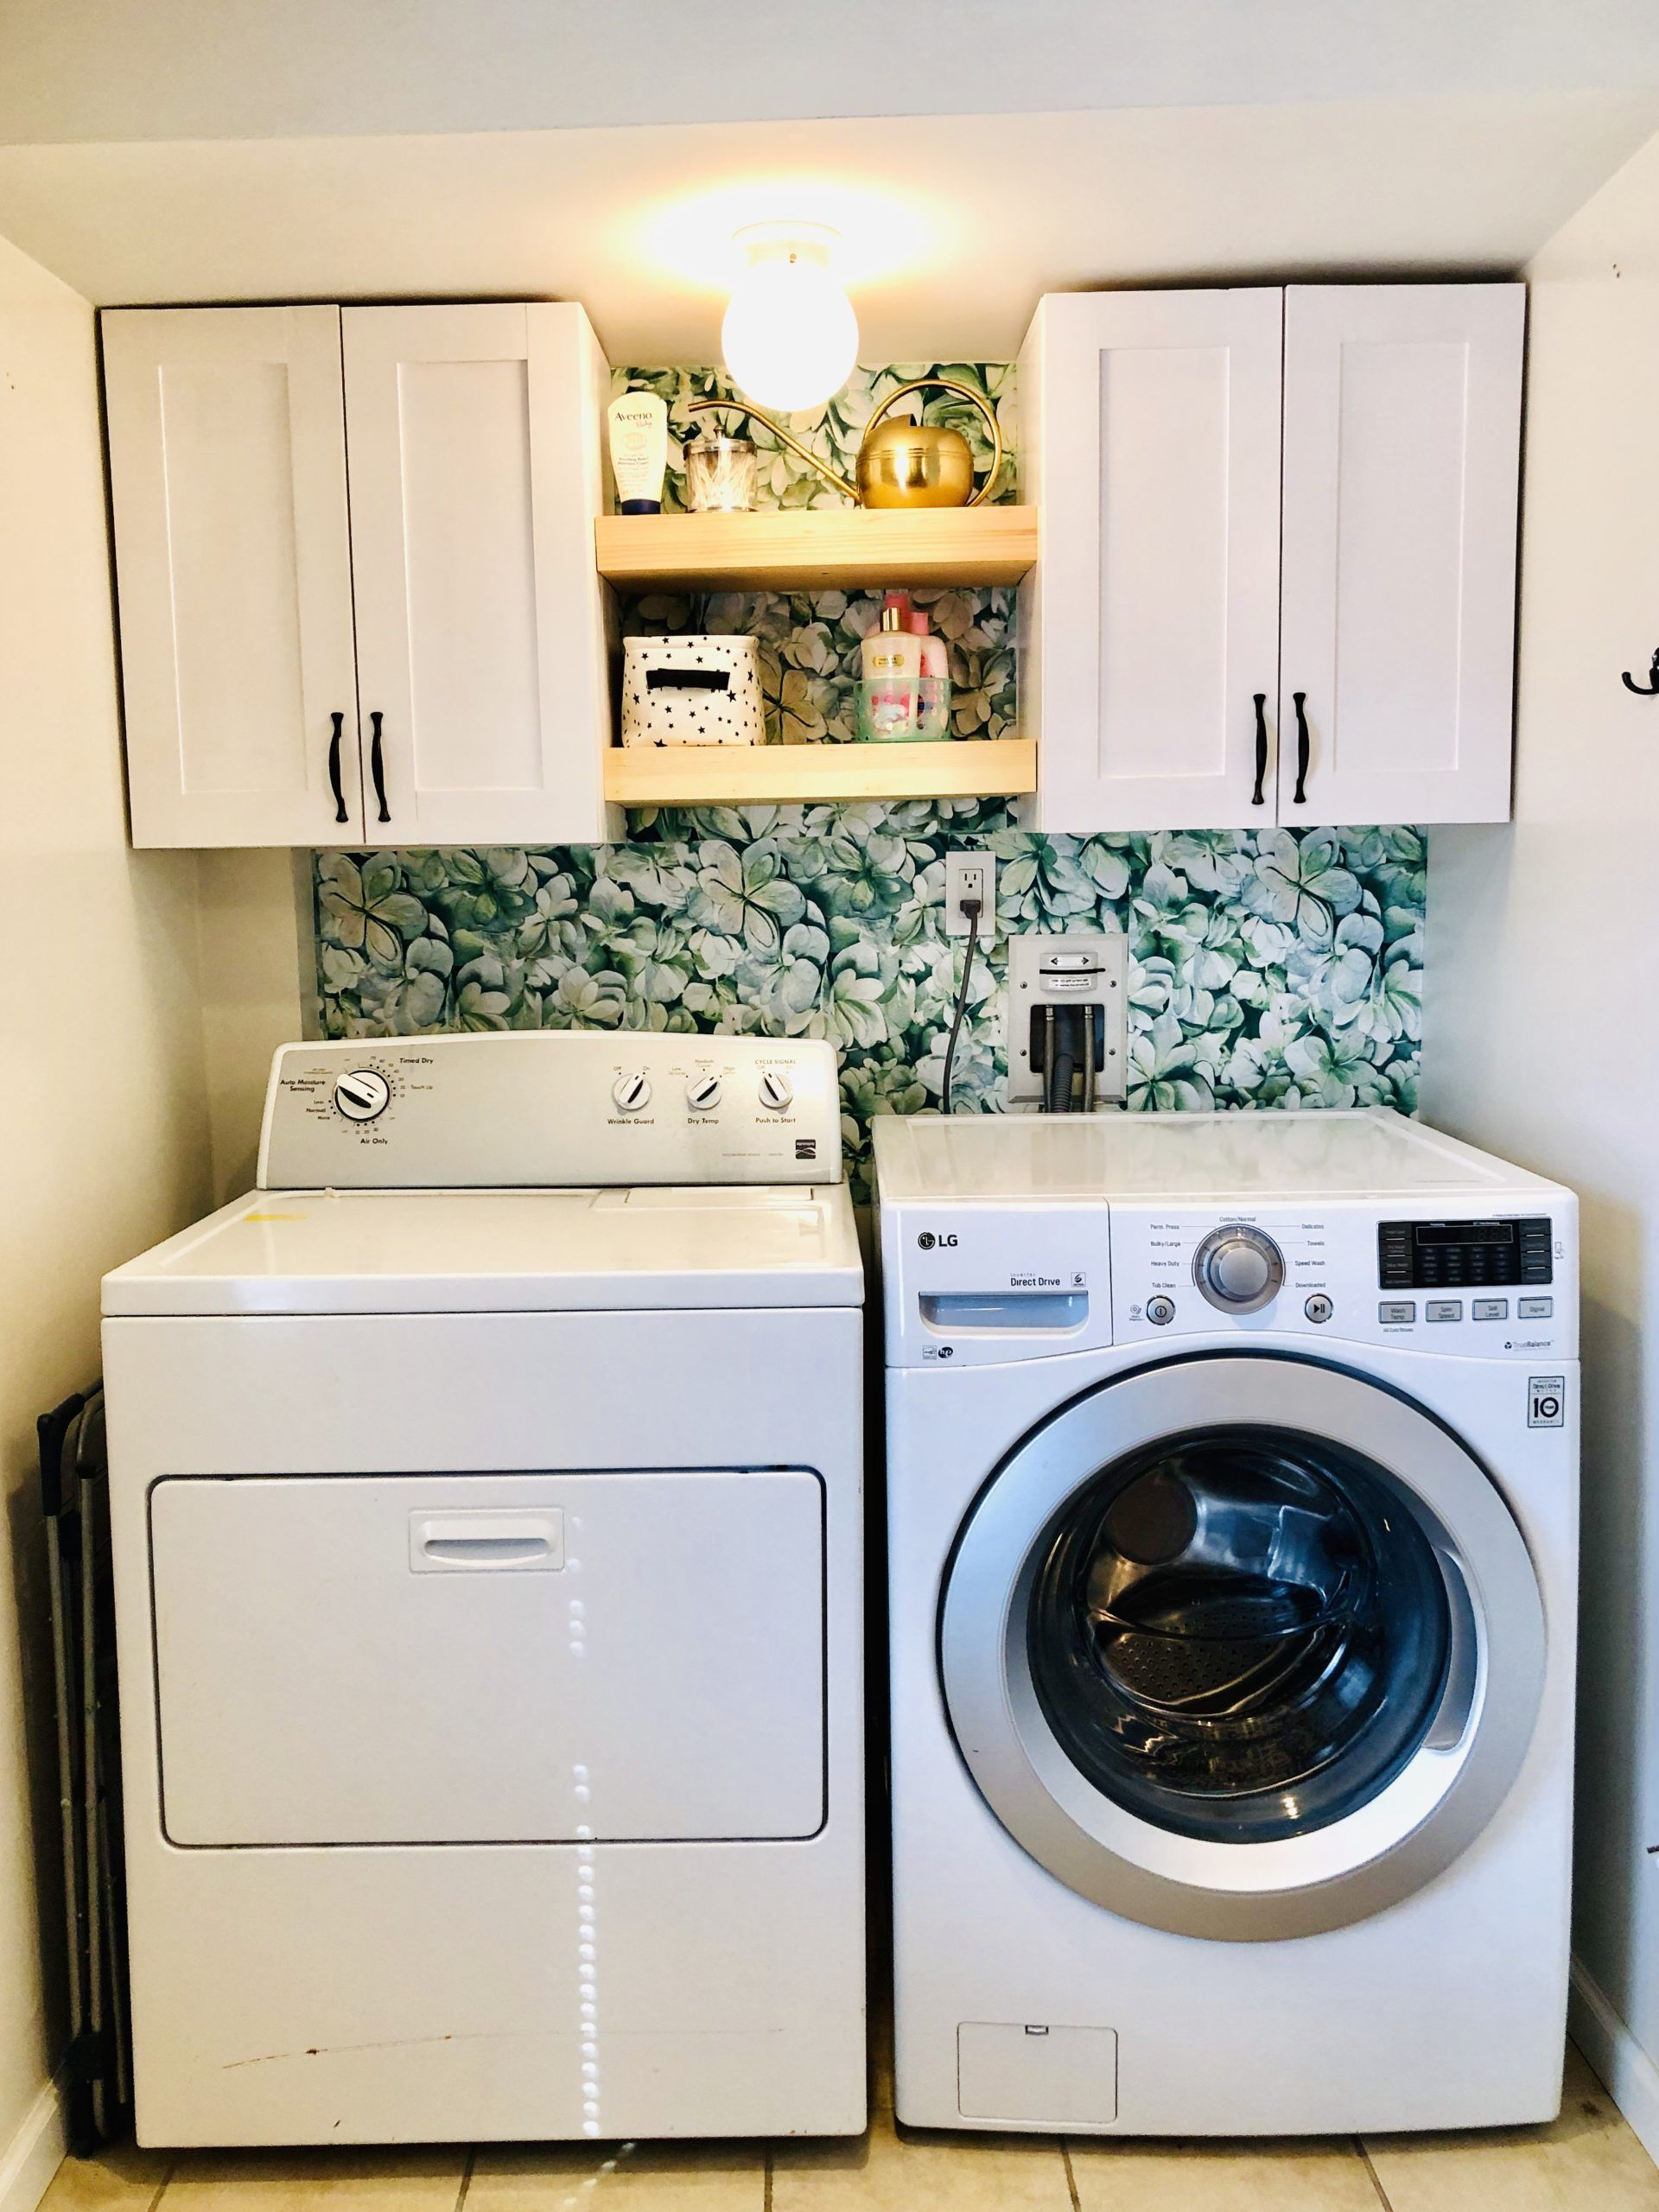 Laundry Room Makeover On A Budget In 2020 Laundry Room Makeover